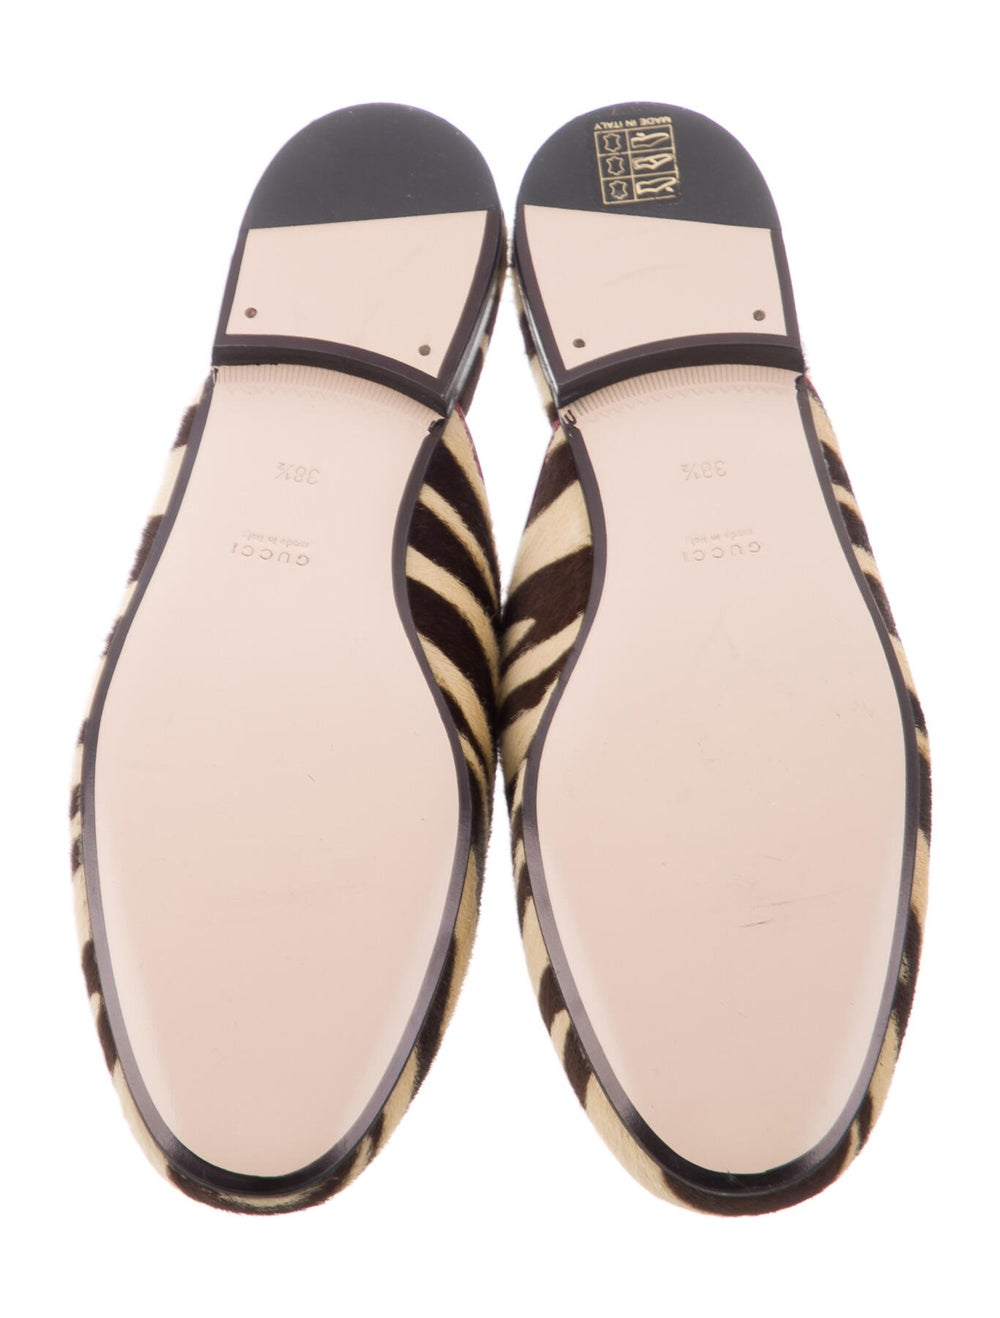 Gucci Princetown Horsebit Accent Mules Yellow - image 5